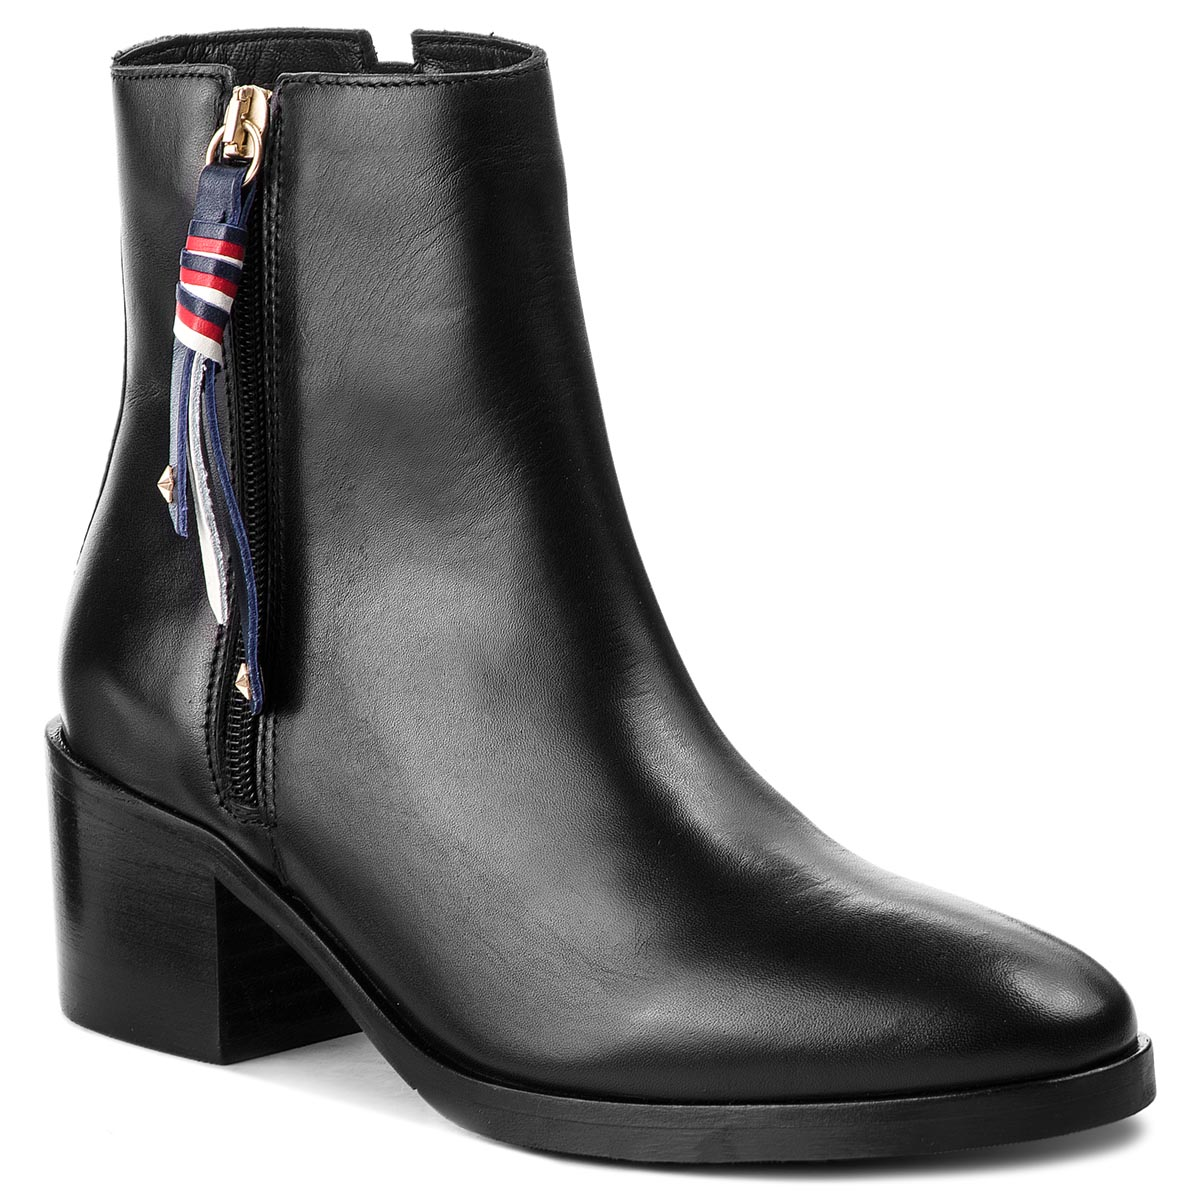 Botas TOMMY HILFIGER - Corporate Tassel Mid FW0FW03430  Black 990